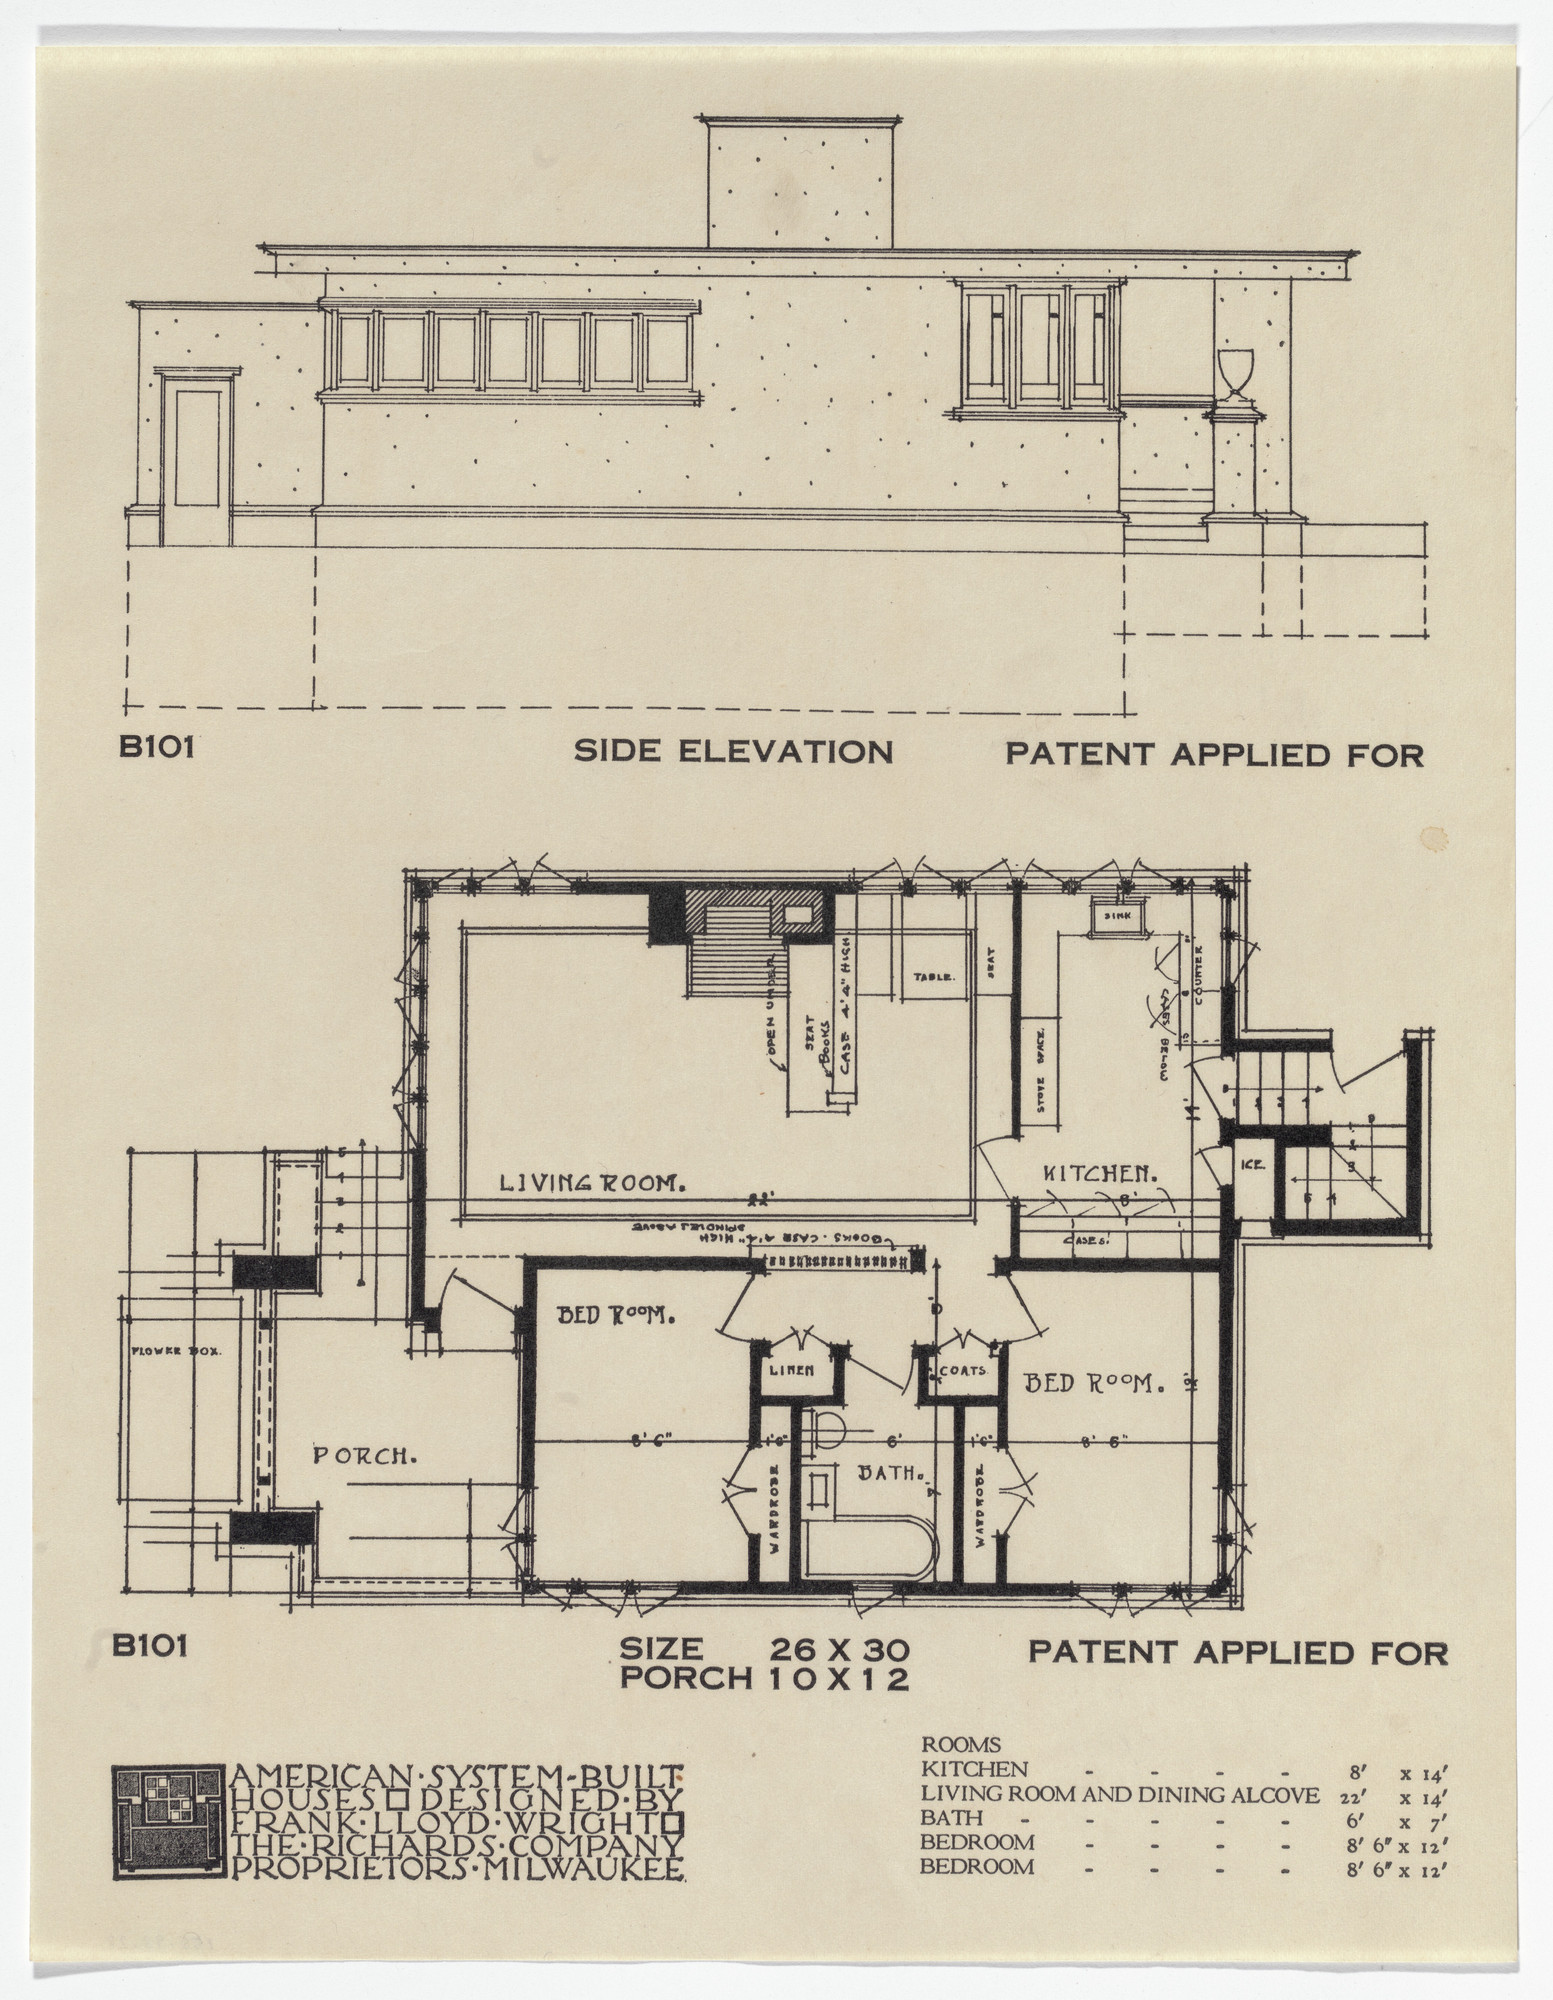 Frank Lloyd Wright. American System-Built Houses for The Richards Company project, Milwaukee, Wisconsin (Plan and elevation). 1915-17